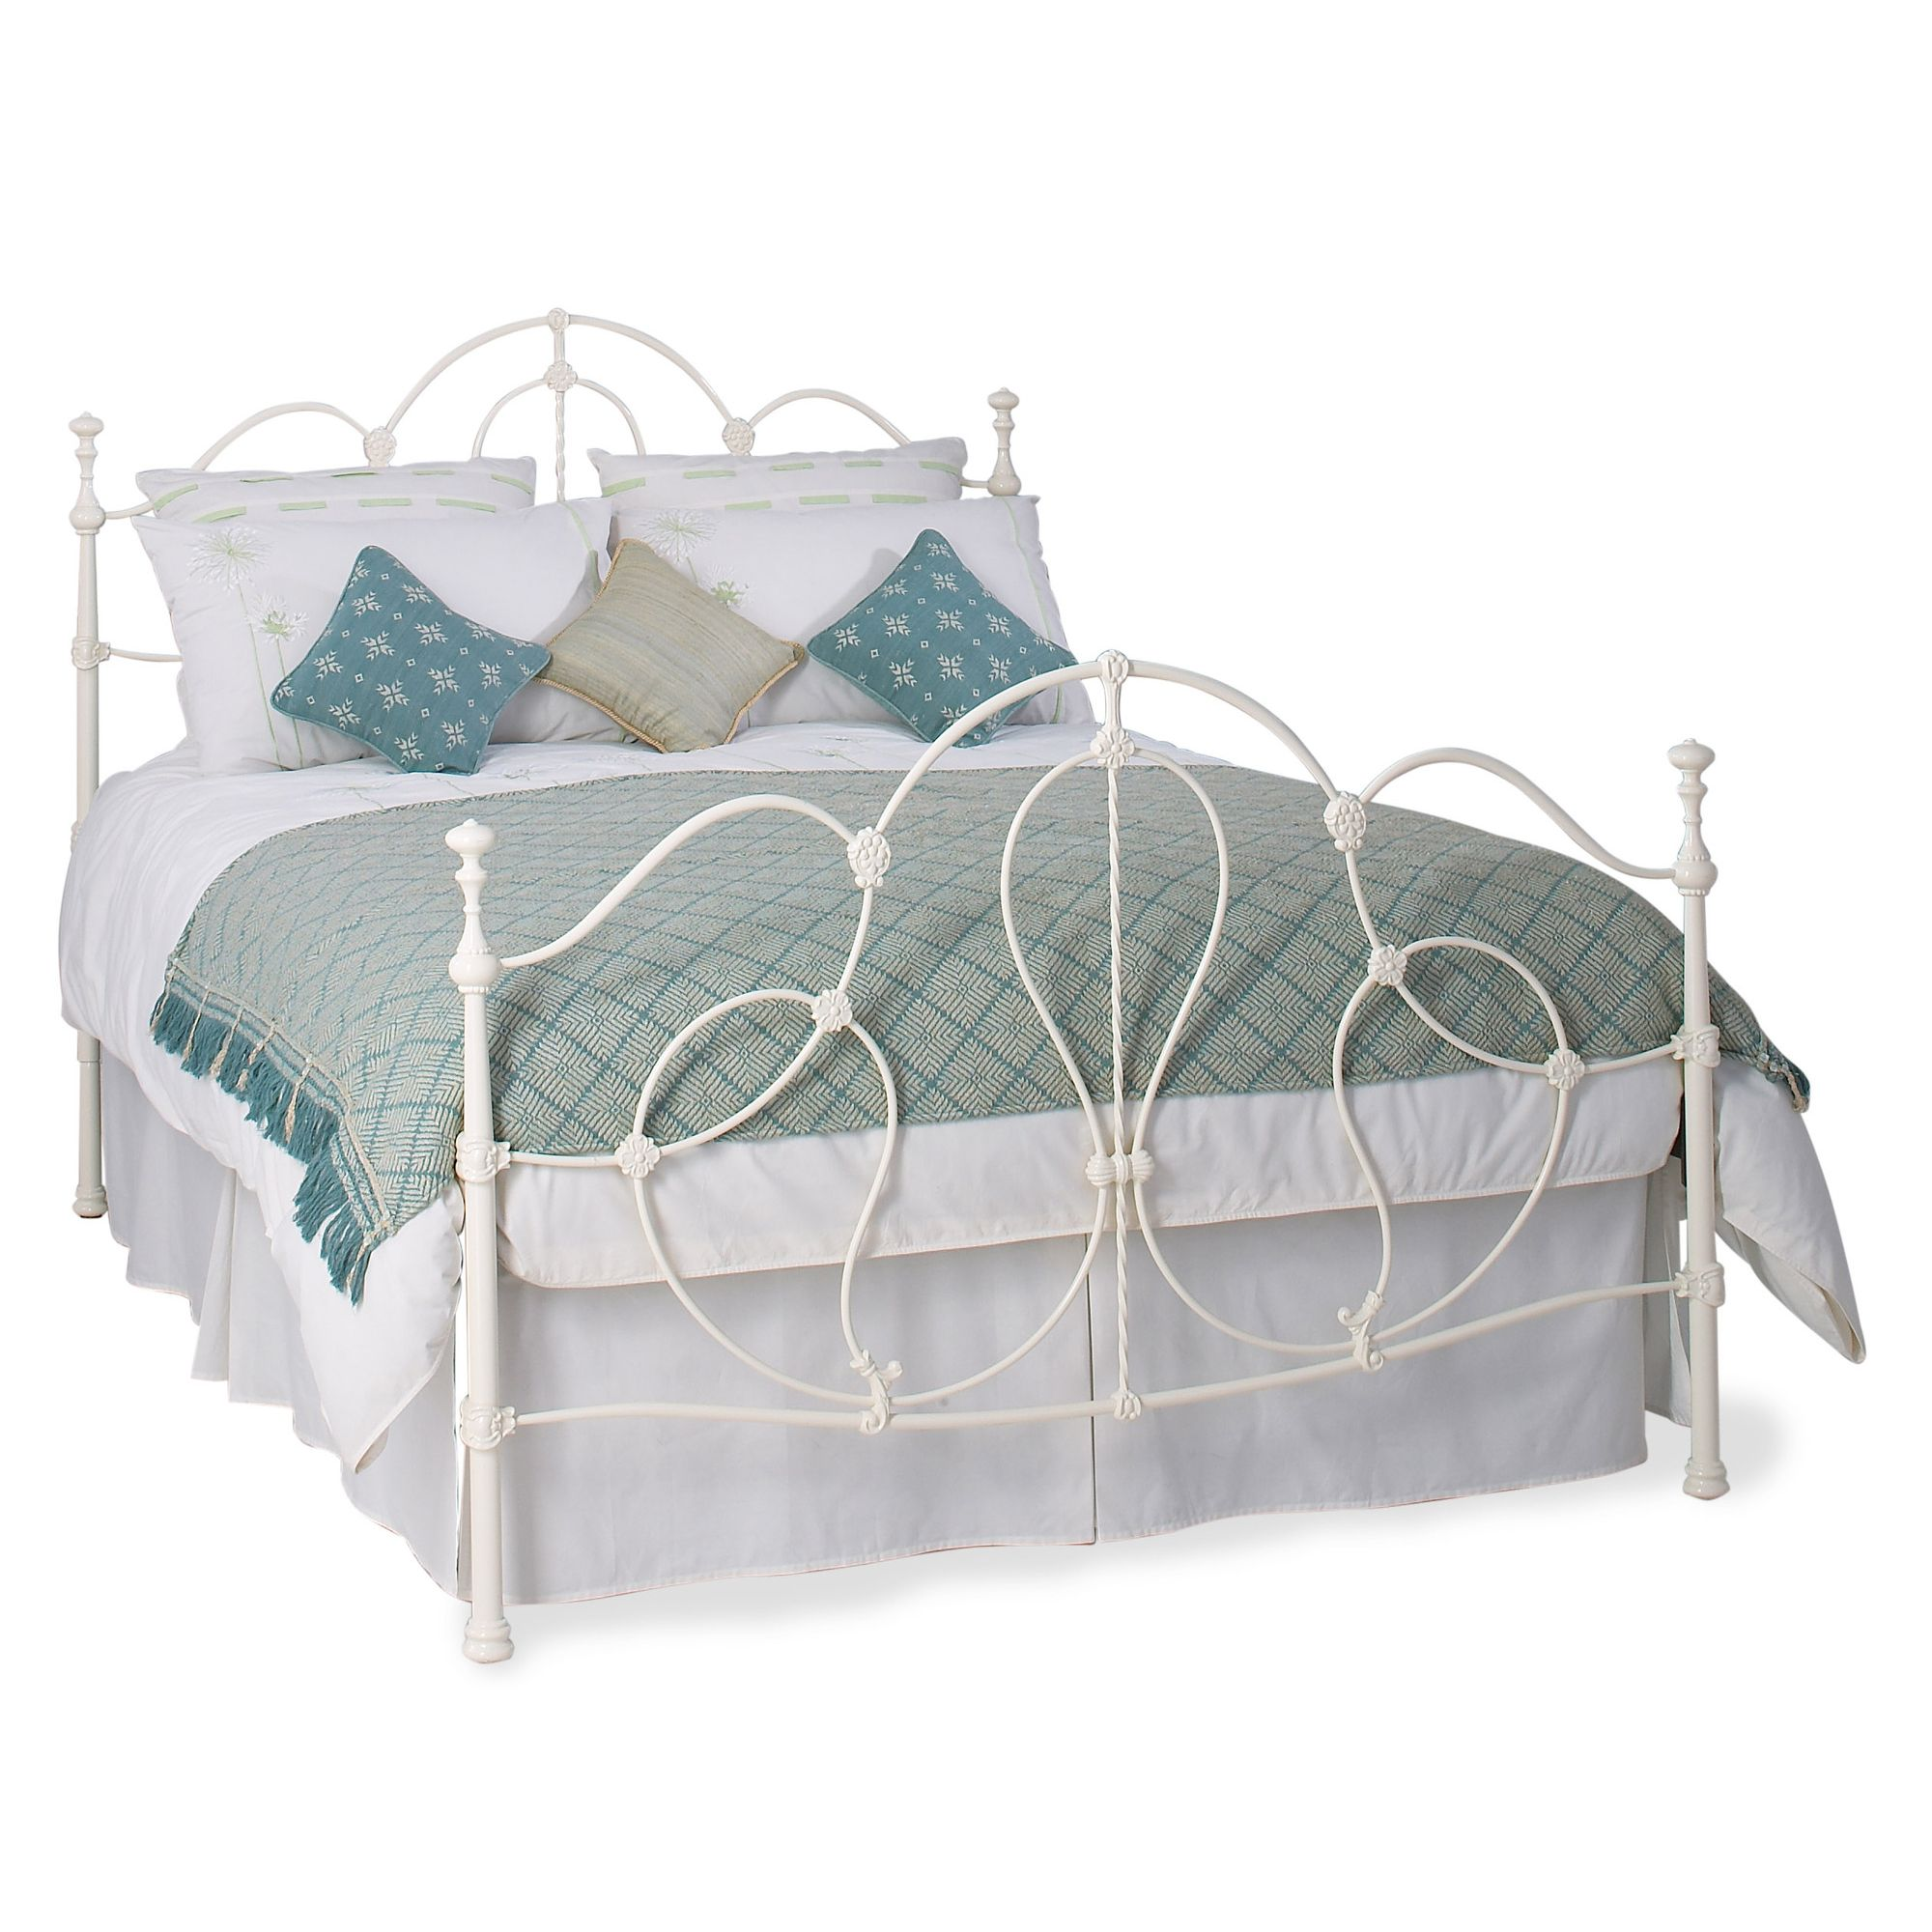 OBC Cara Bed Frame - King at Tesco Direct